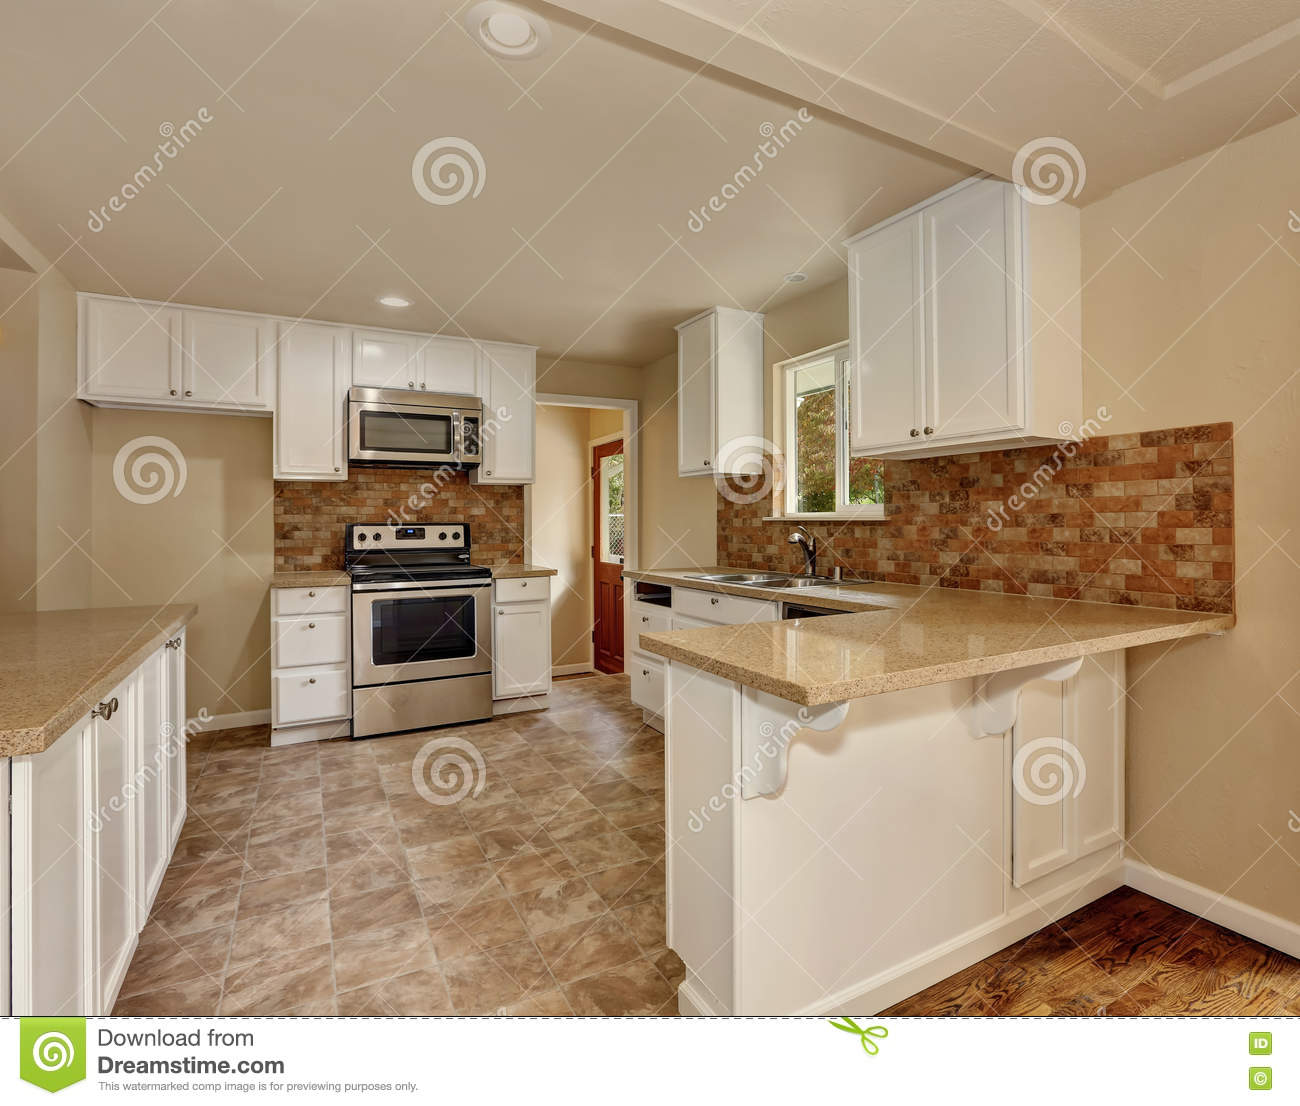 Orange Kitchen Room With White Cabinets Stock Image: American Classic Style Kitchen Room Interior Stock Photo